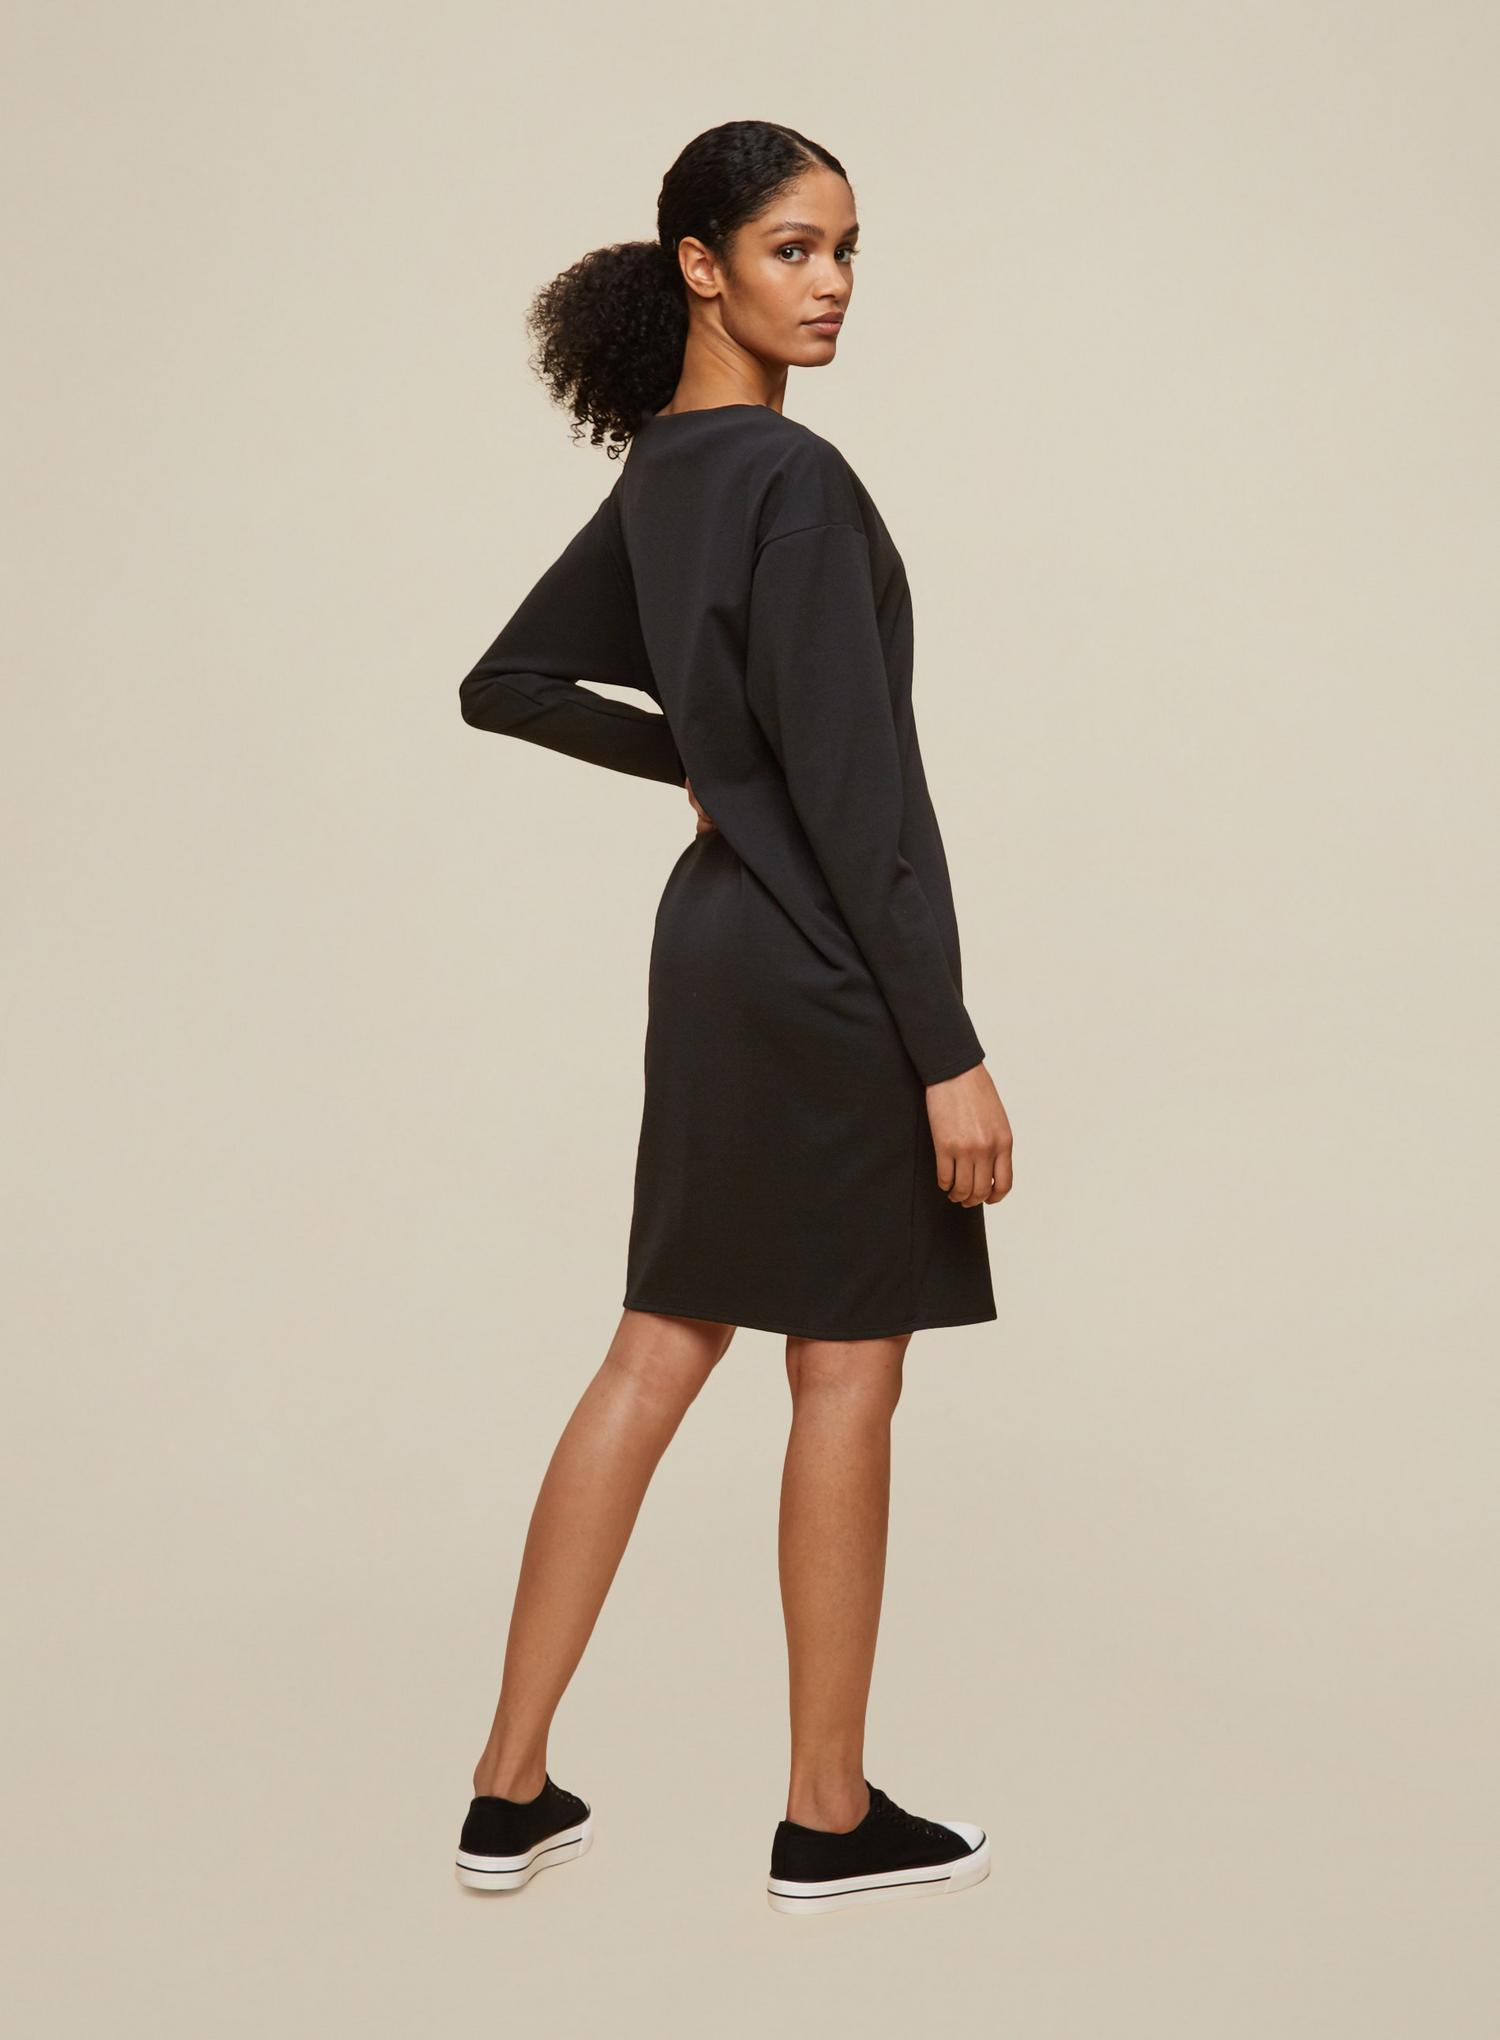 105 Tall Black Shift Dress image number 2